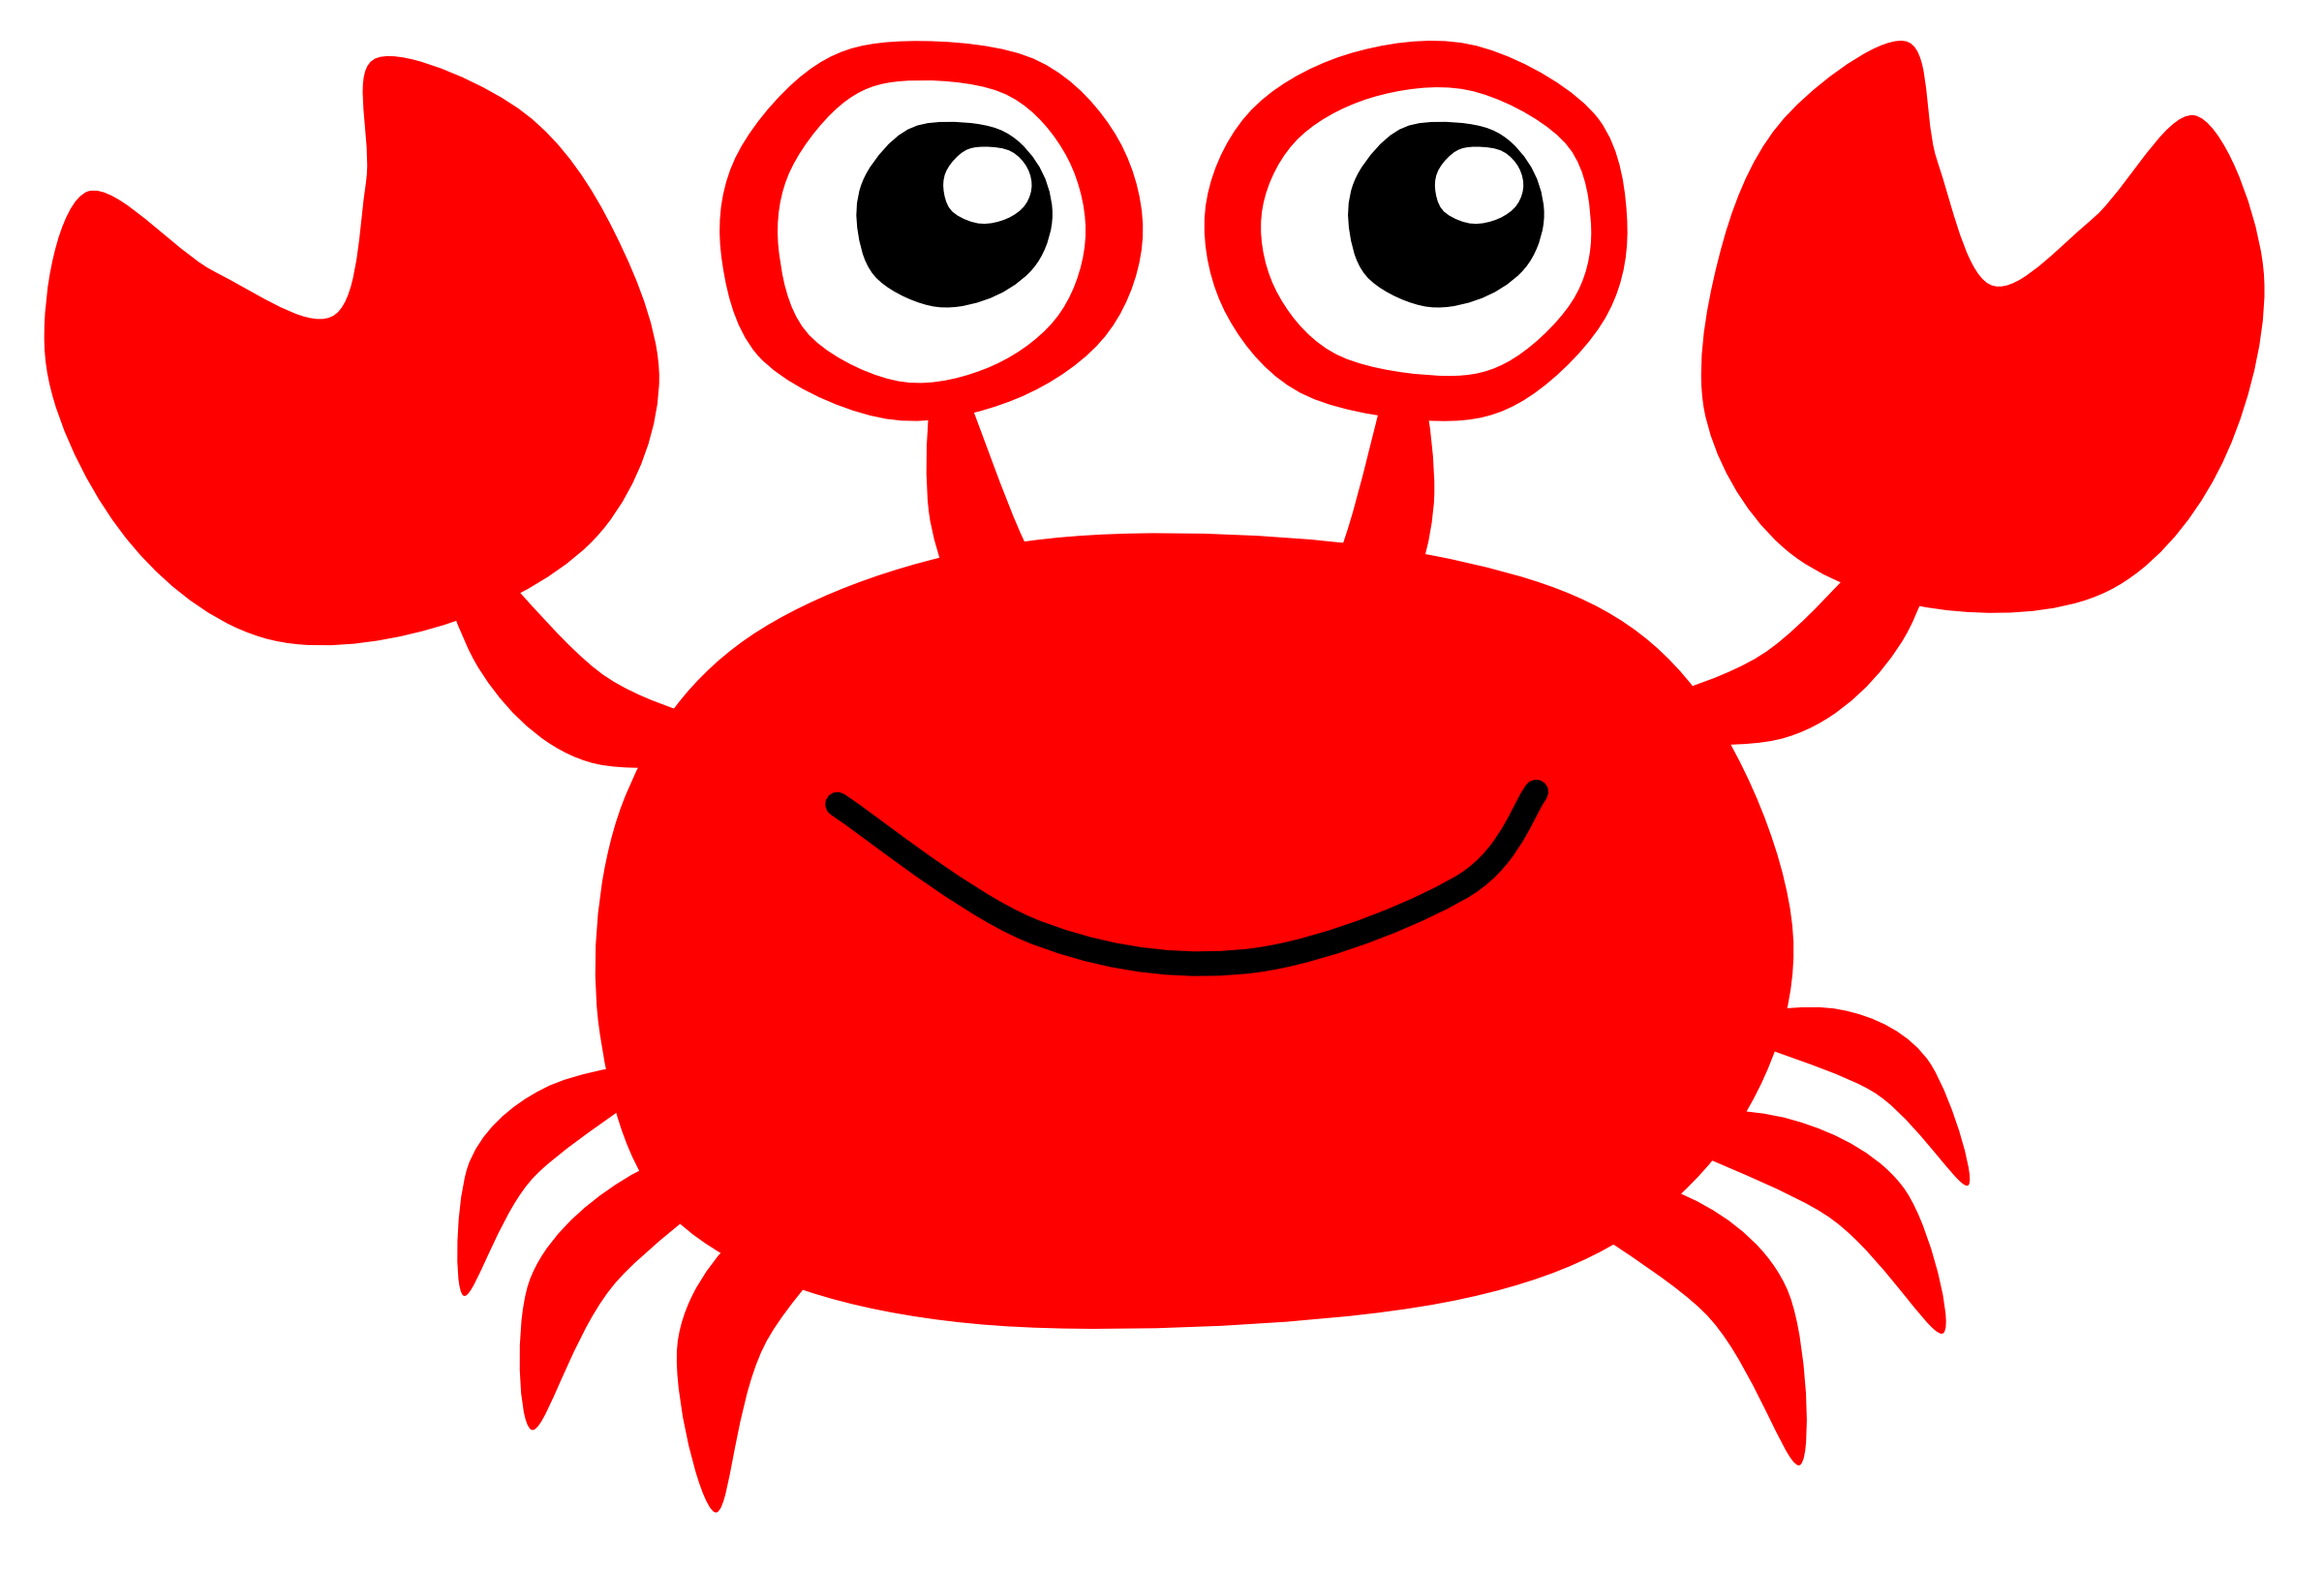 Crabs drawing creative. Seafood graphic royalty